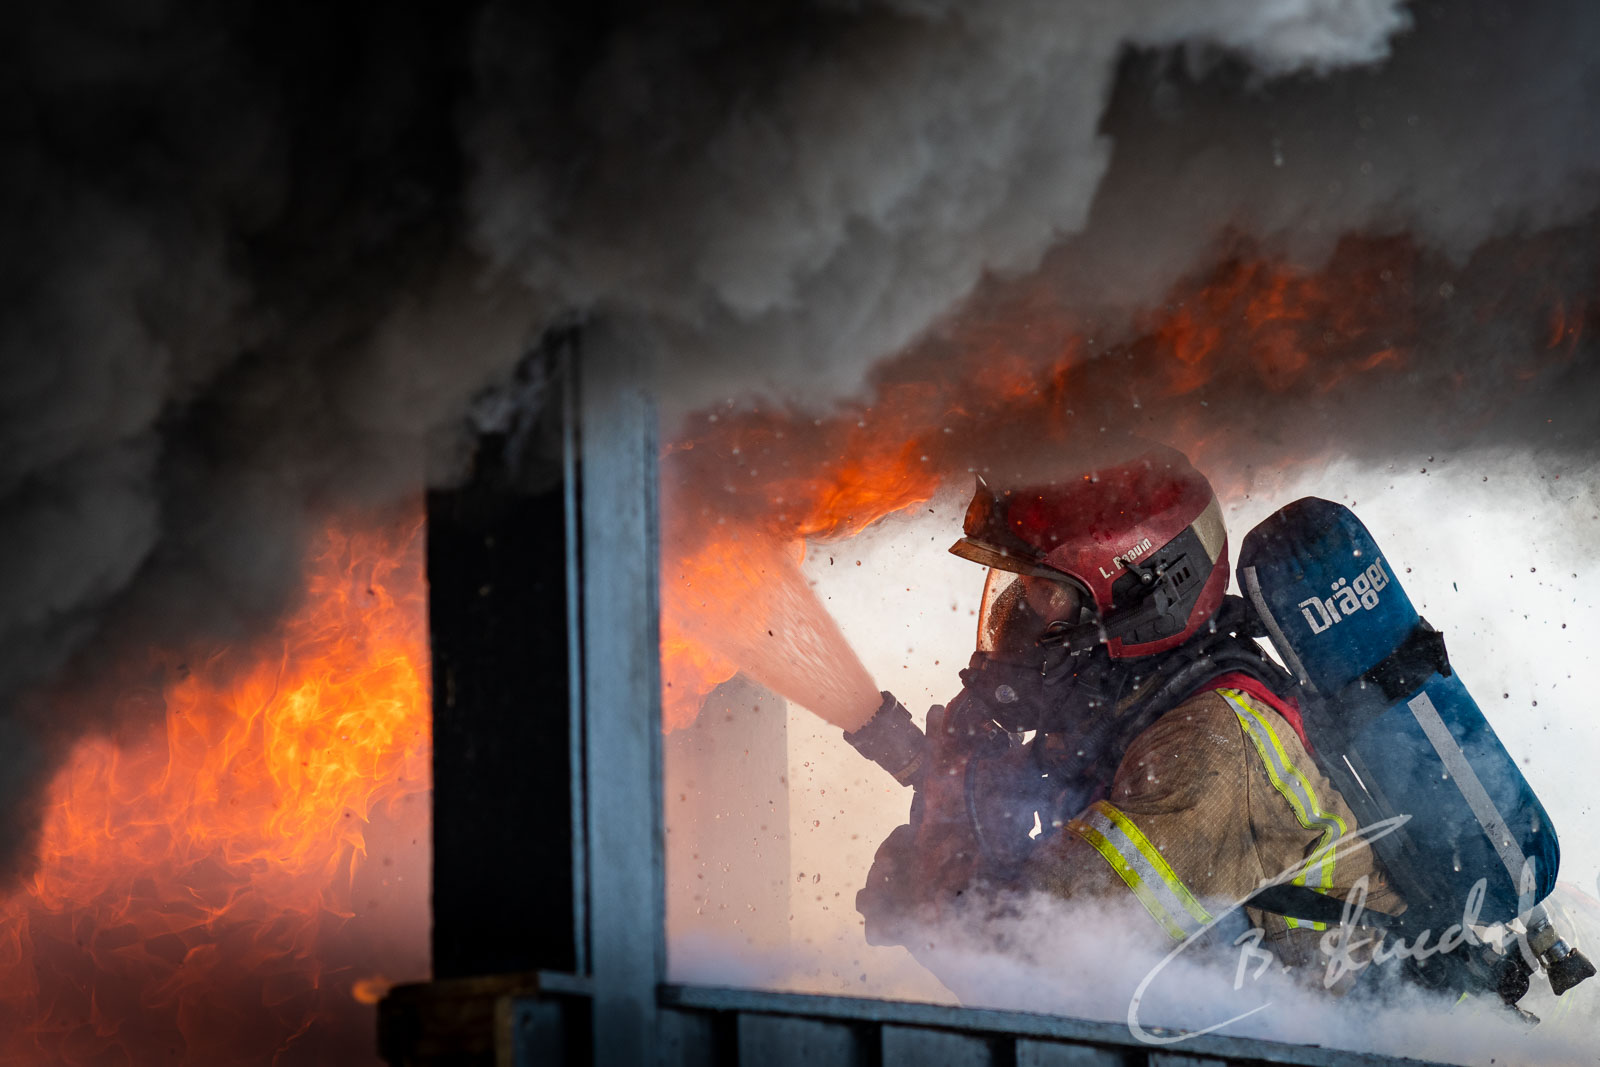 Firefighter controls flame